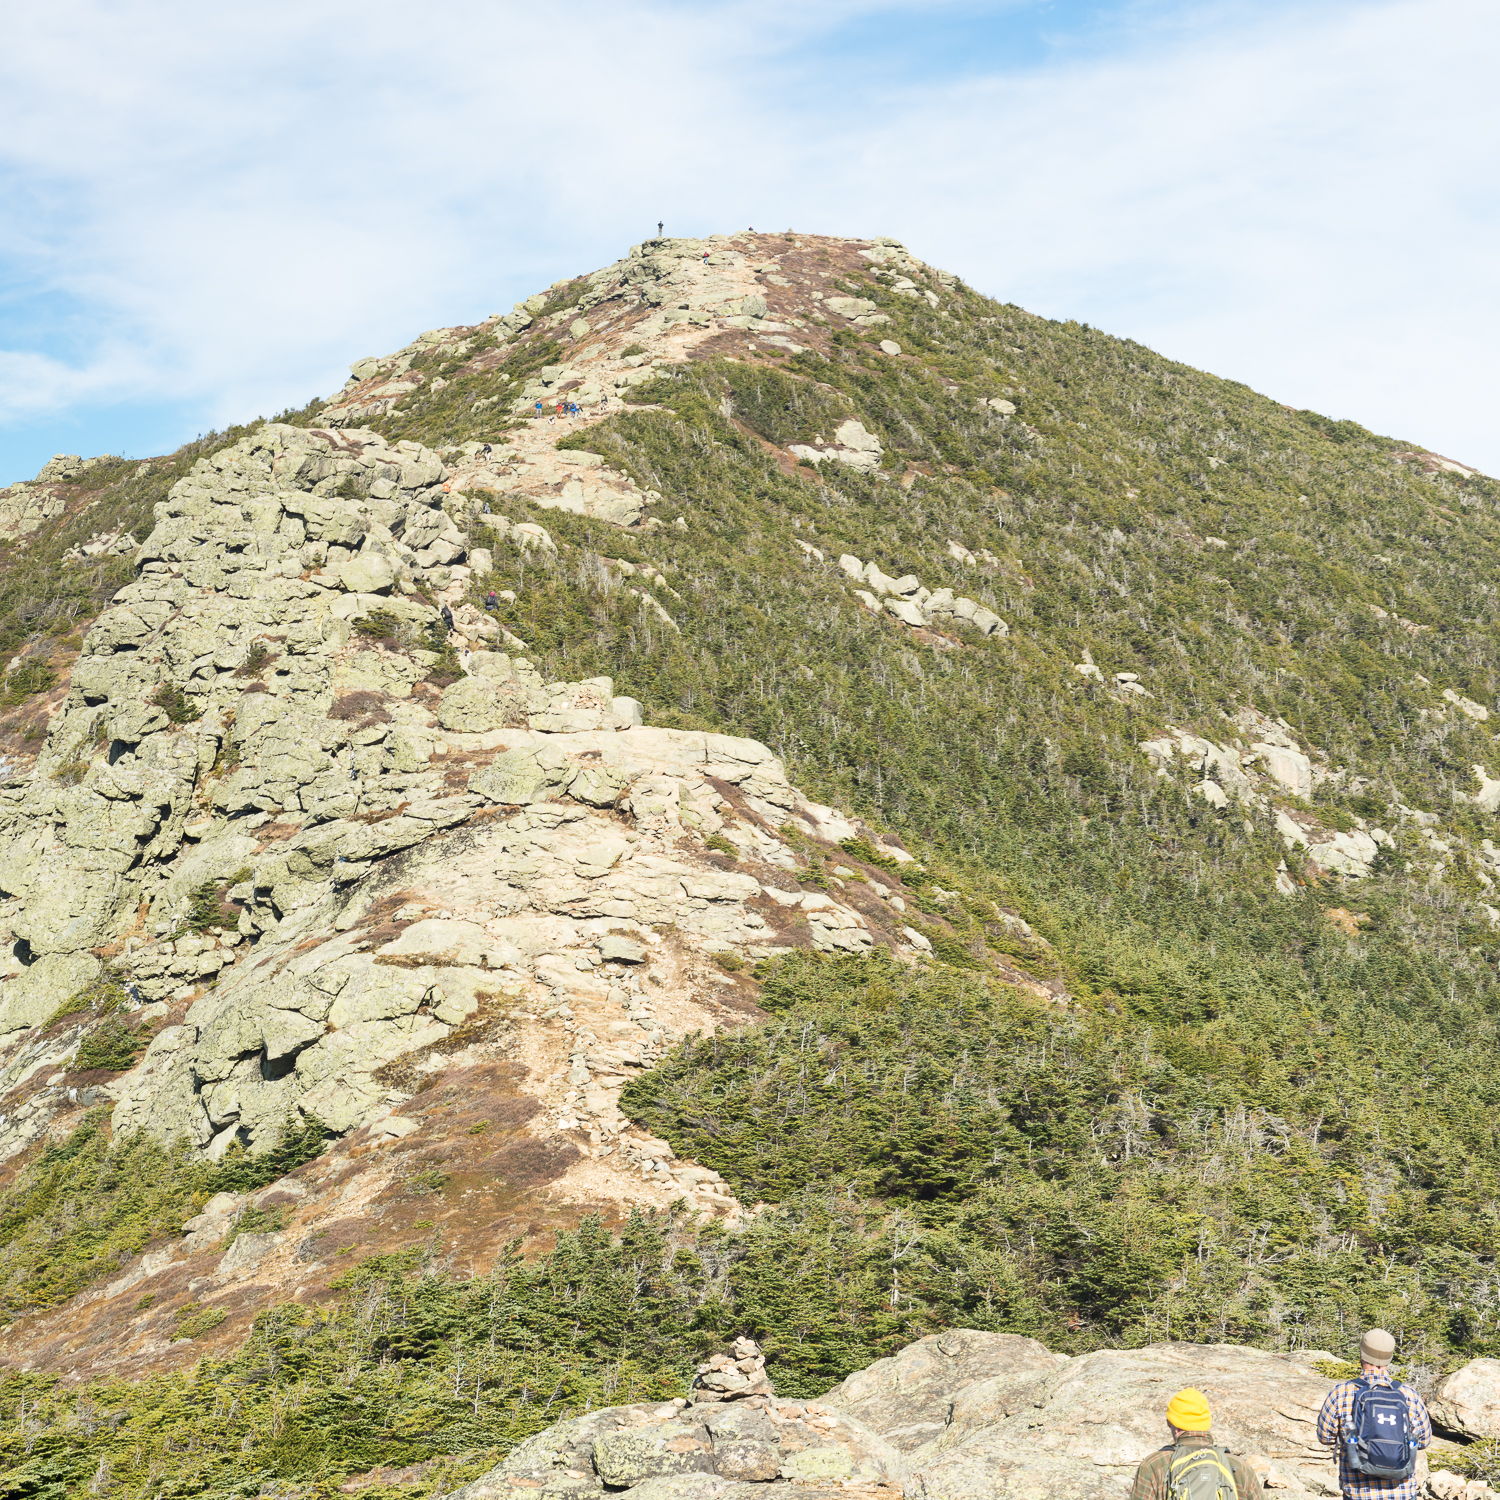 The trail up Mount Lafayette